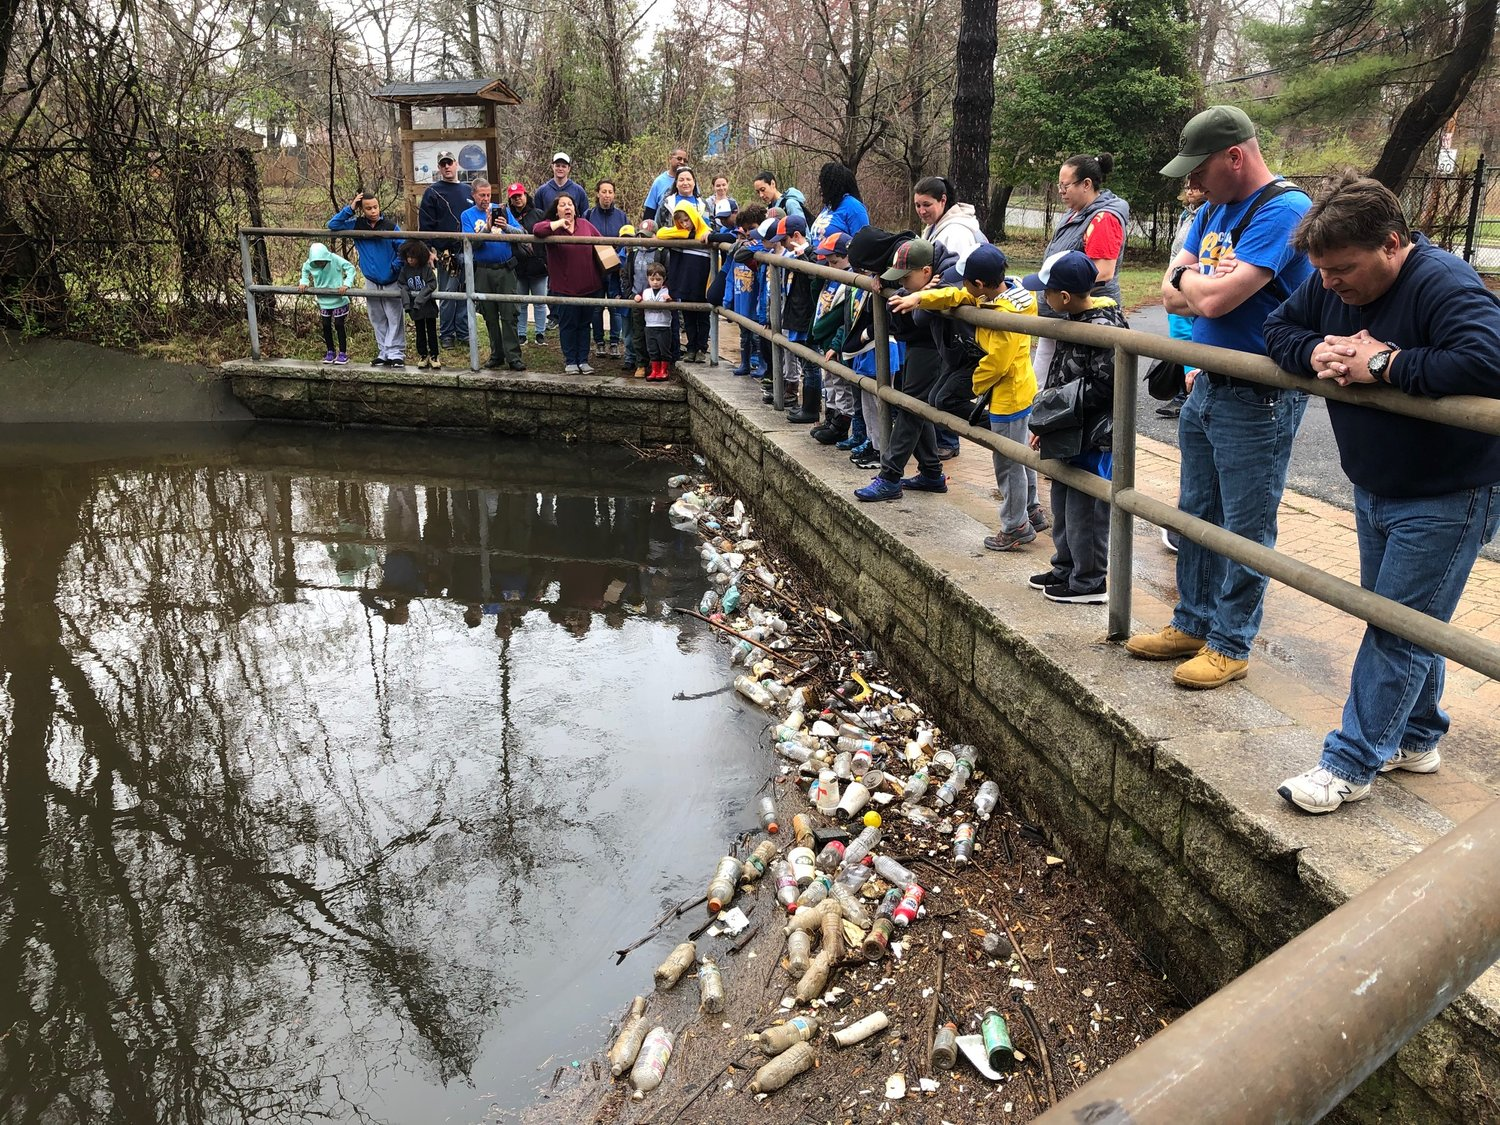 Cub Scouts Pack 24 in Malverne took part in a cleanup at Tanglewood Preserve in Rockville Centre on April 13.